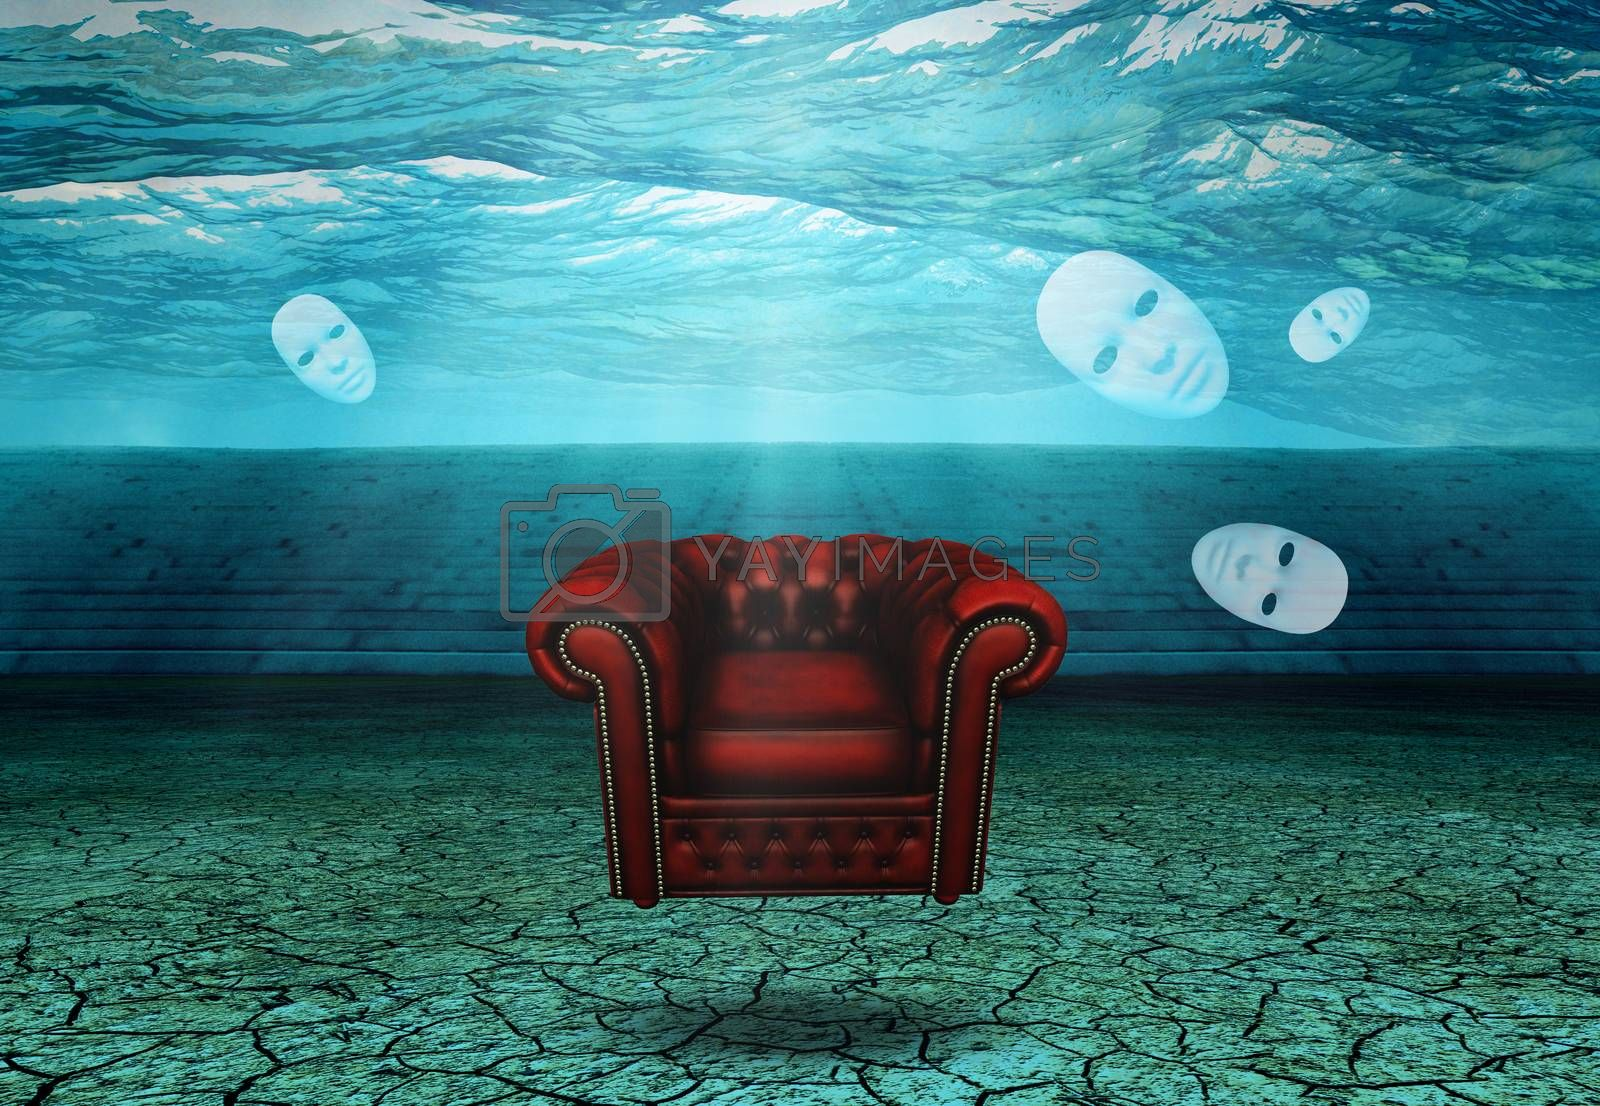 Royalty free image of White Mask and armchair by applesstock